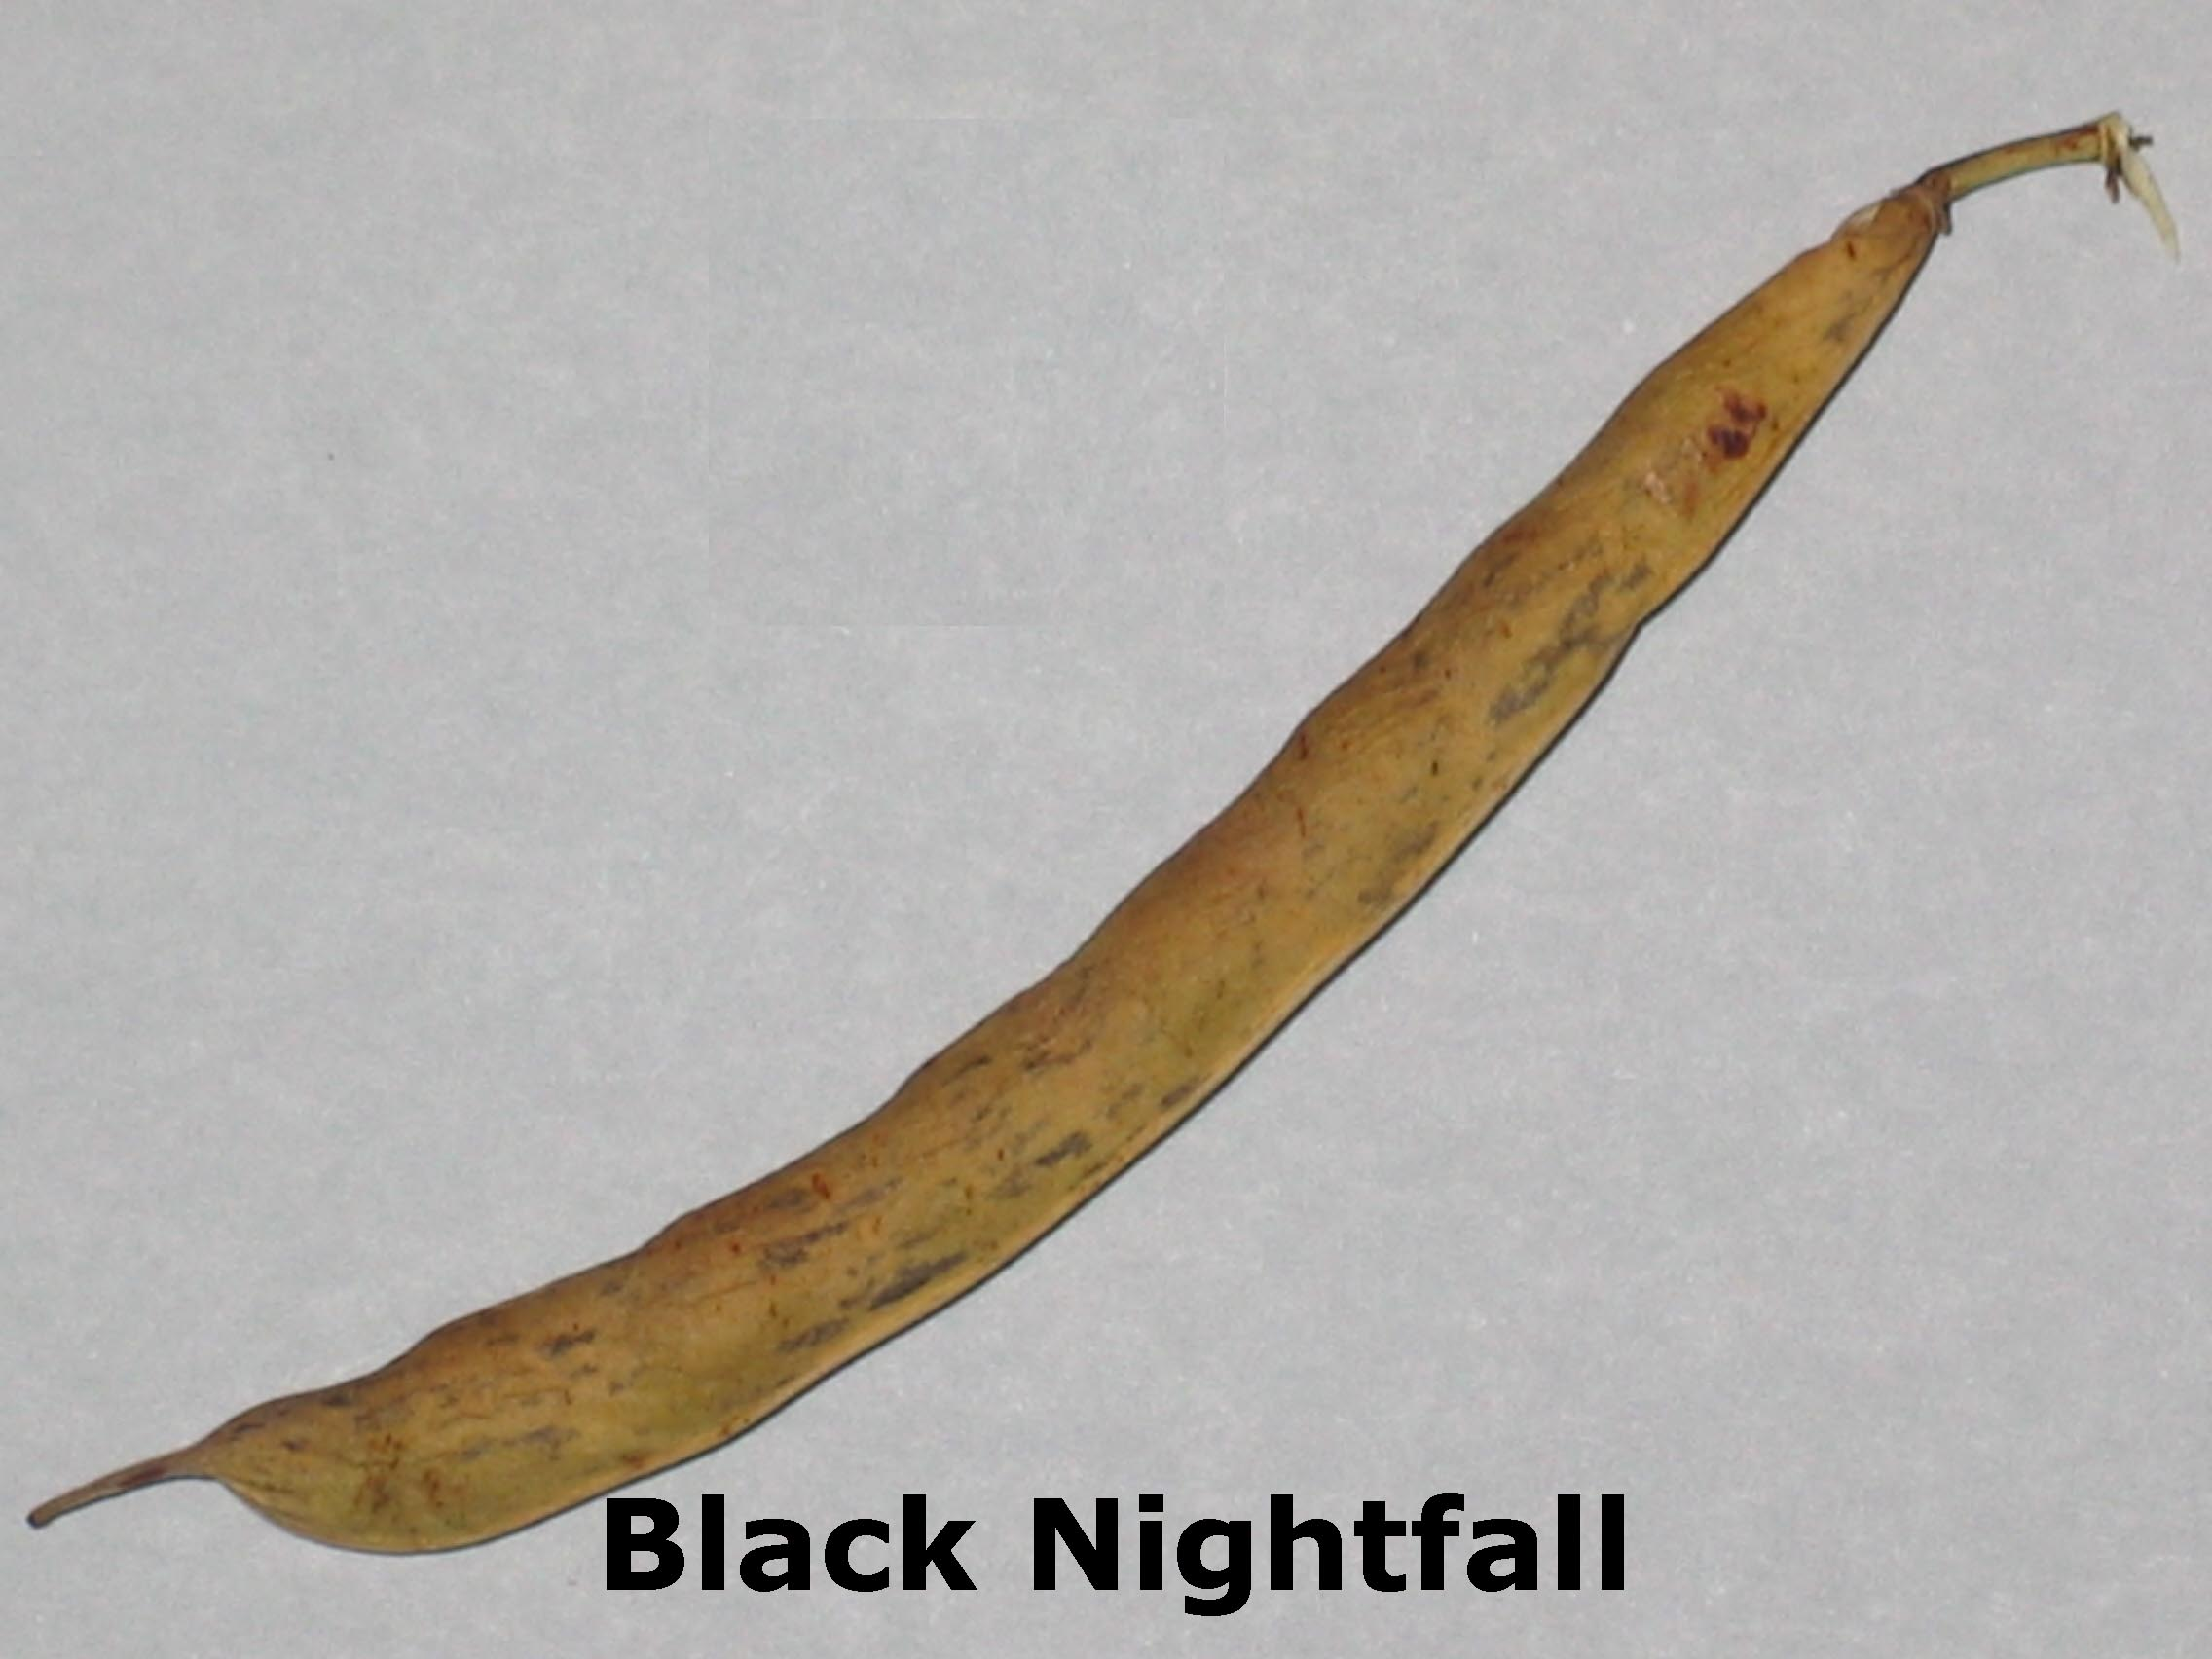 image of a Black Nightfall bean pod